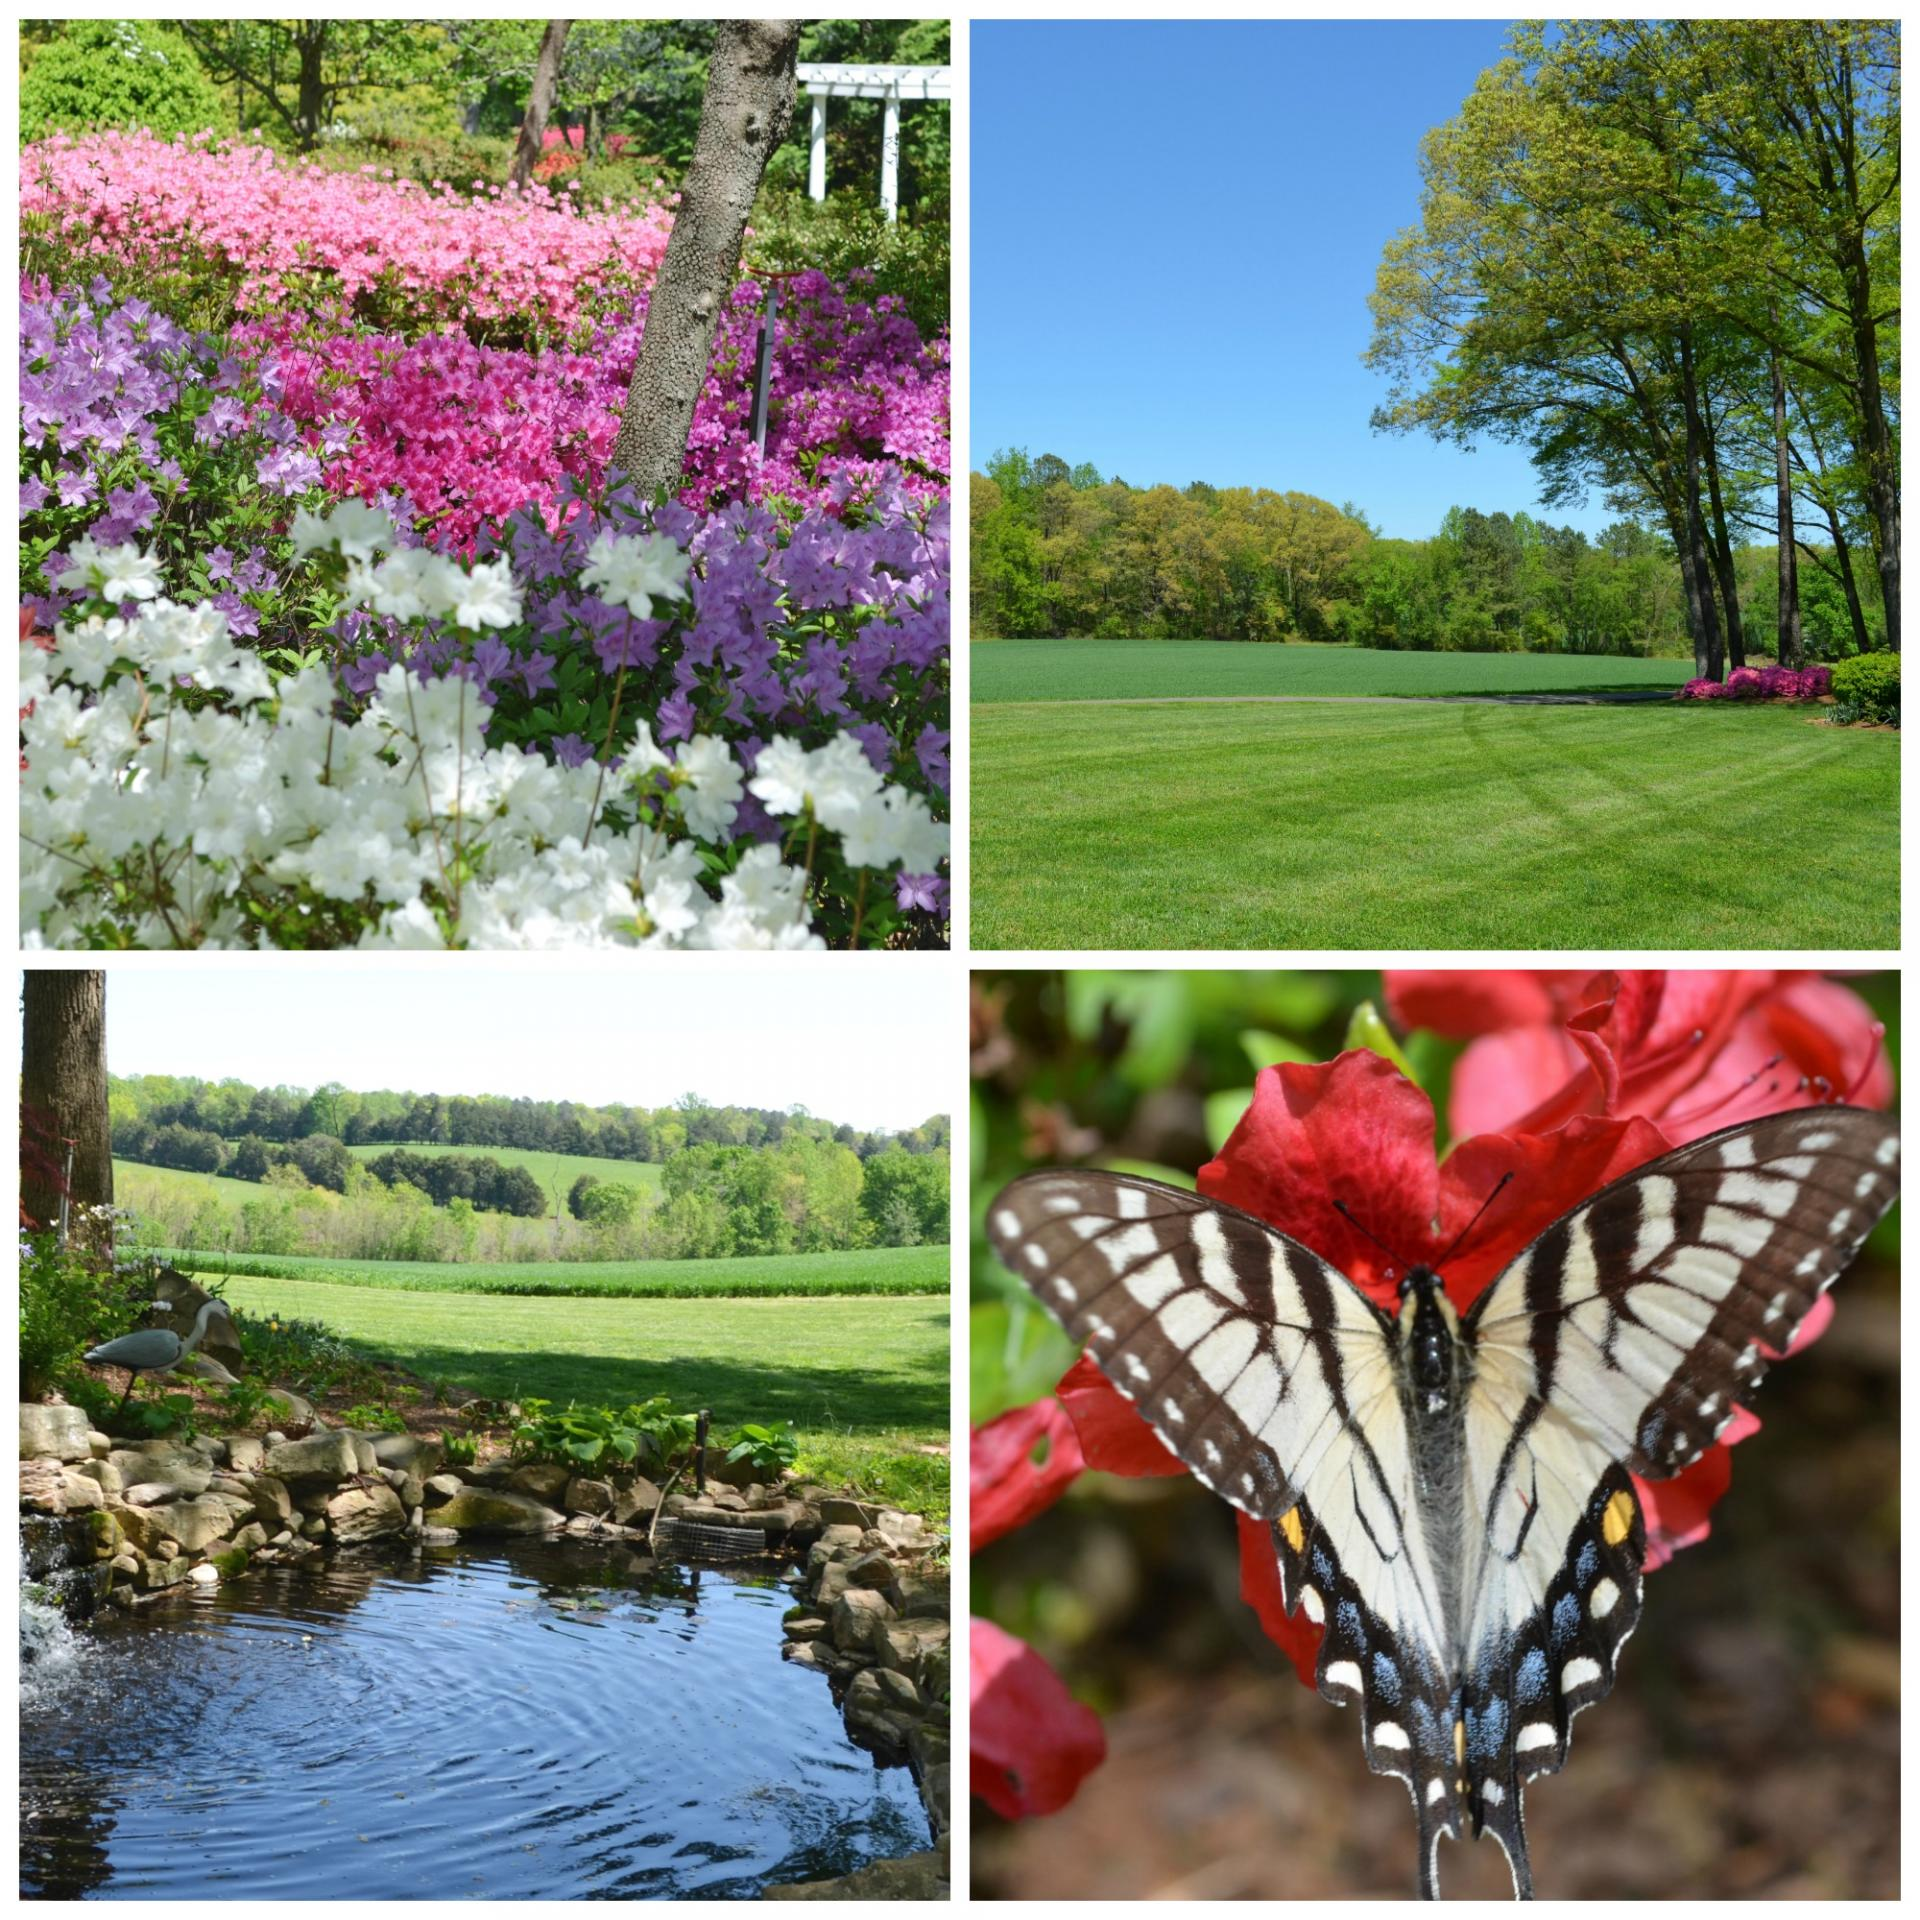 Lewis Ginter Botanical Garden Is The Recipient Of A Gift Of A 79 Acre  Estate In Hanover County, Near Rockville, Virginia. This Is Located In A  Rural Area ...